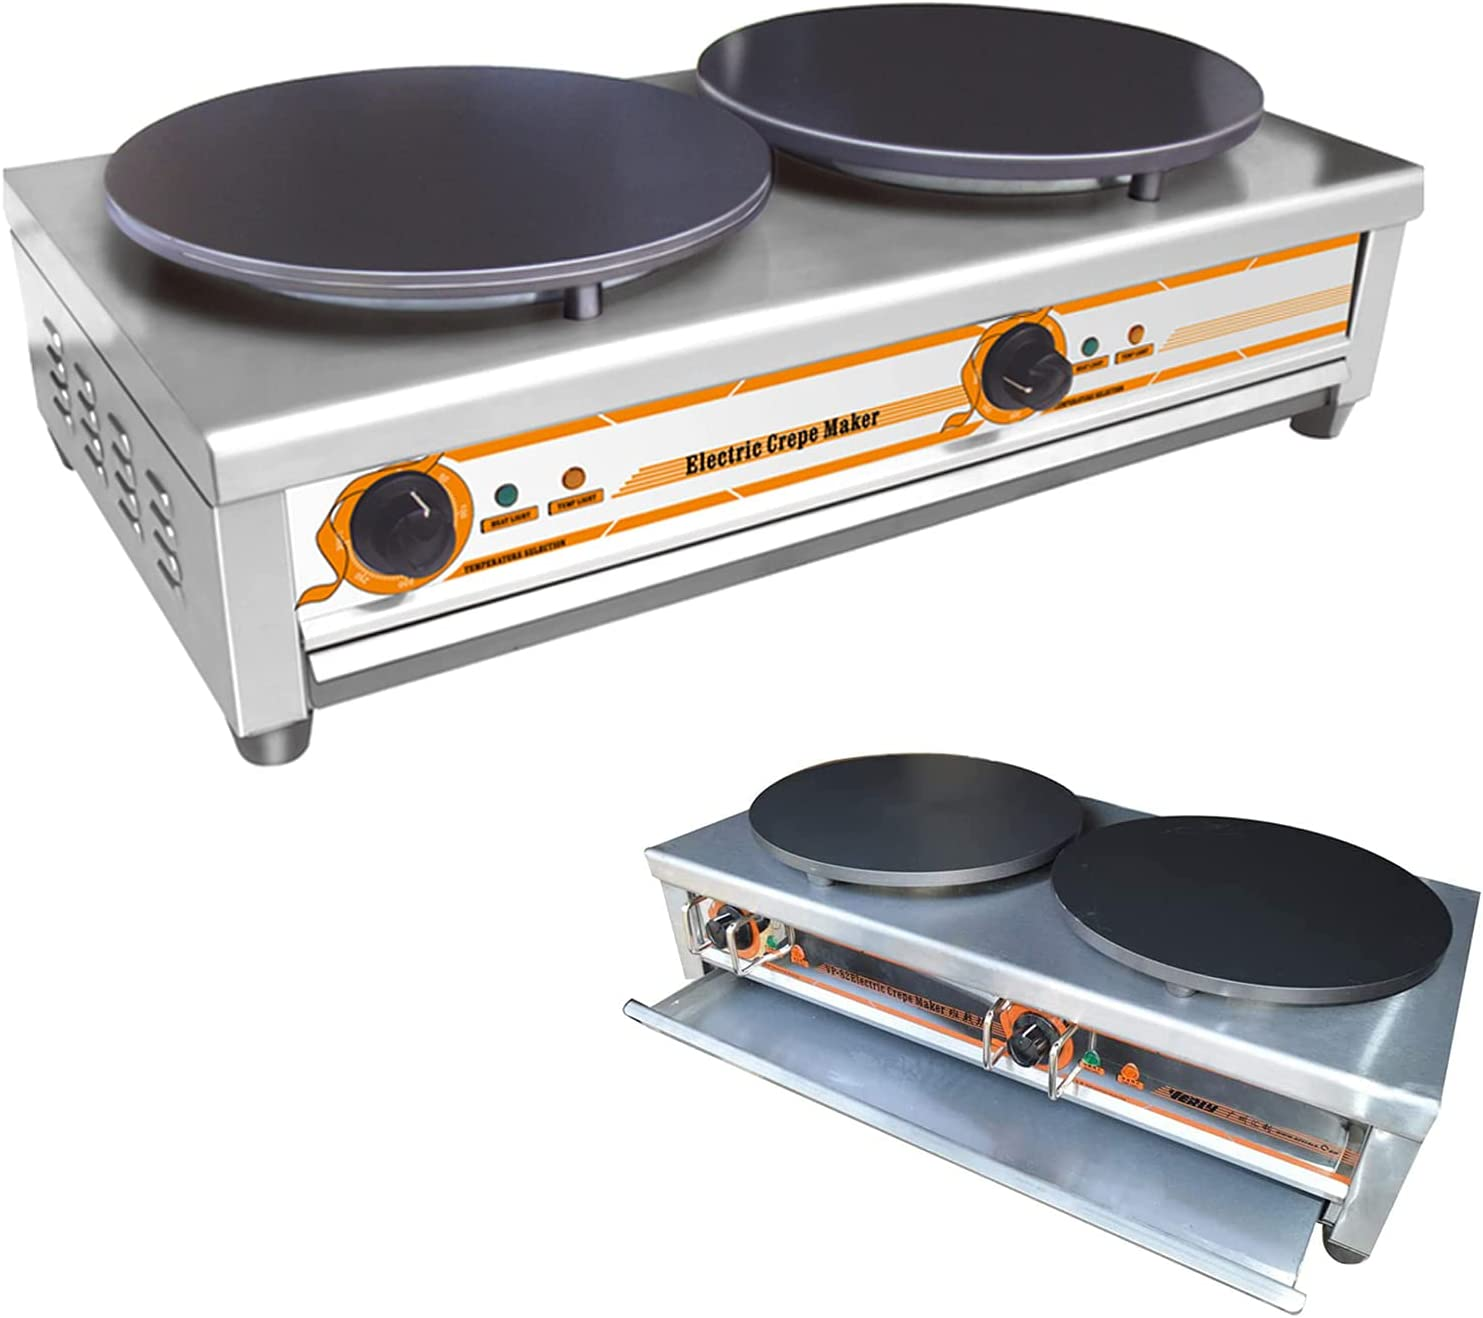 INTBUYING Branded goods 220V 2.75KW+2.75KW Electric Maker 15.75inch Dou Crepe Cheap mail order specialty store